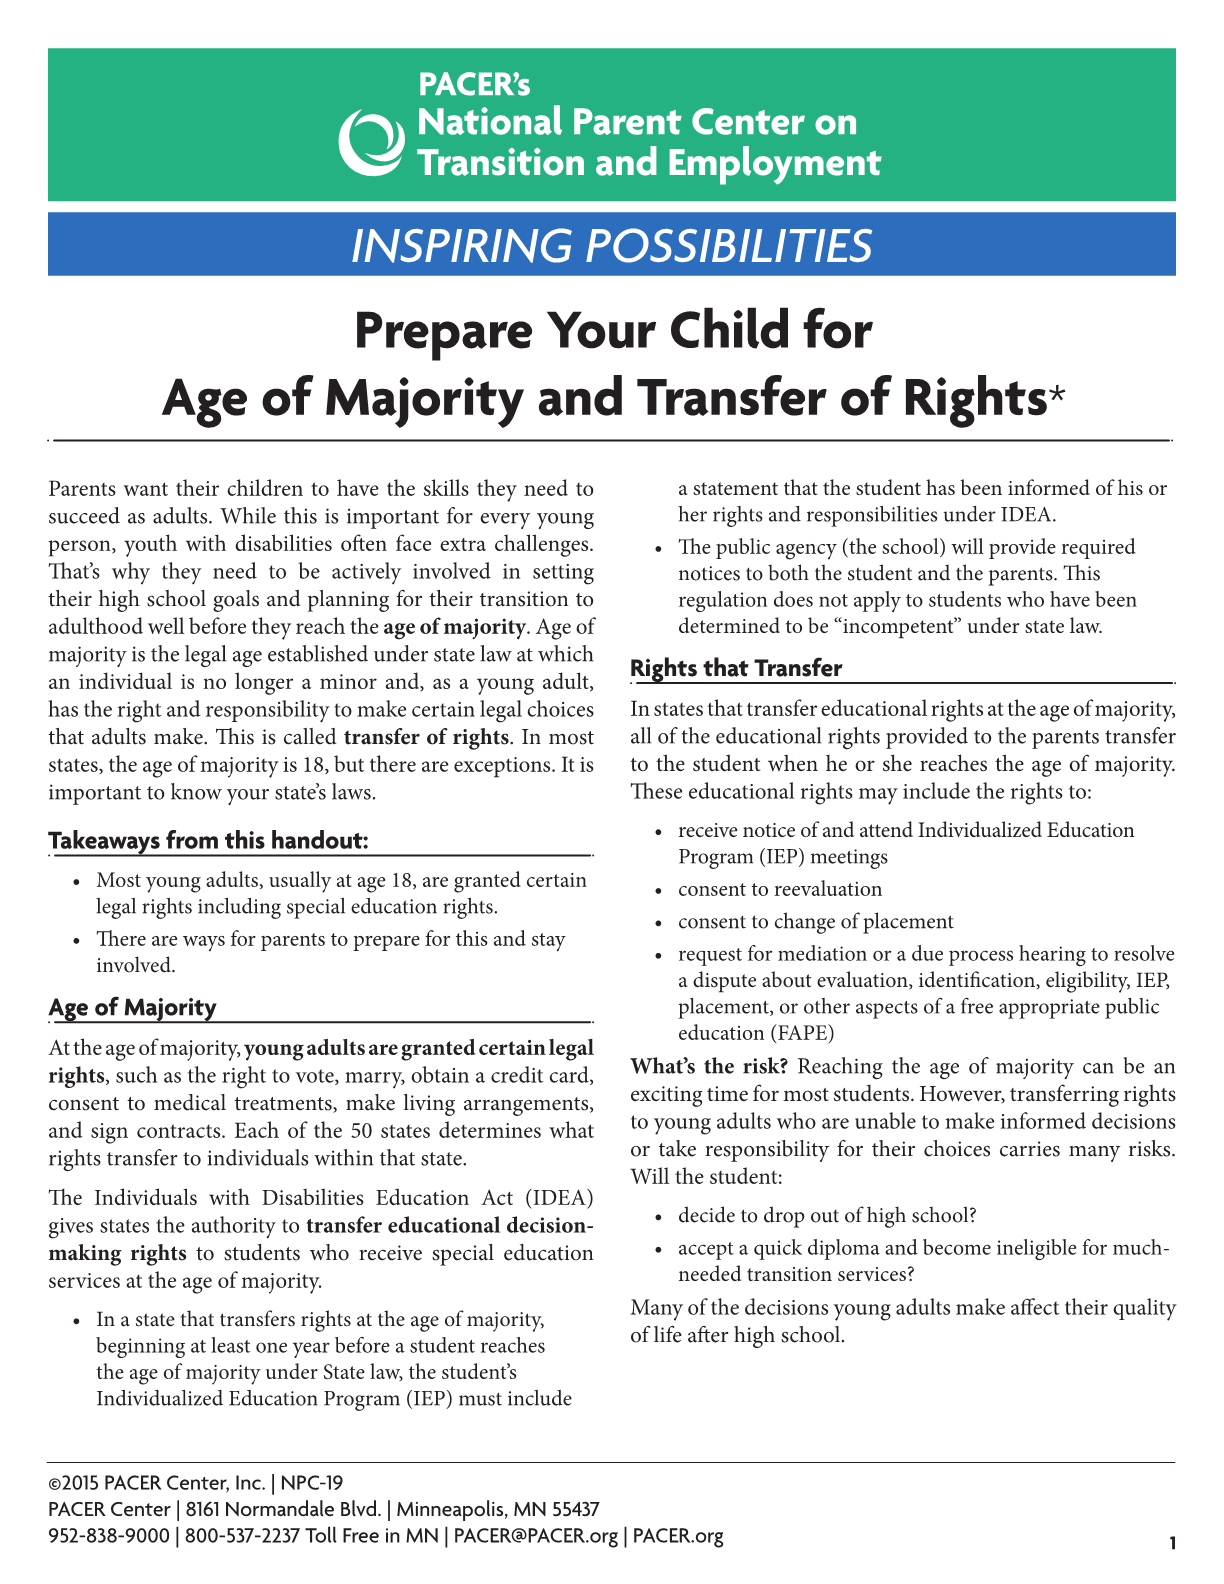 Prepare Your Child for Age of Majority and Transfer of Rights